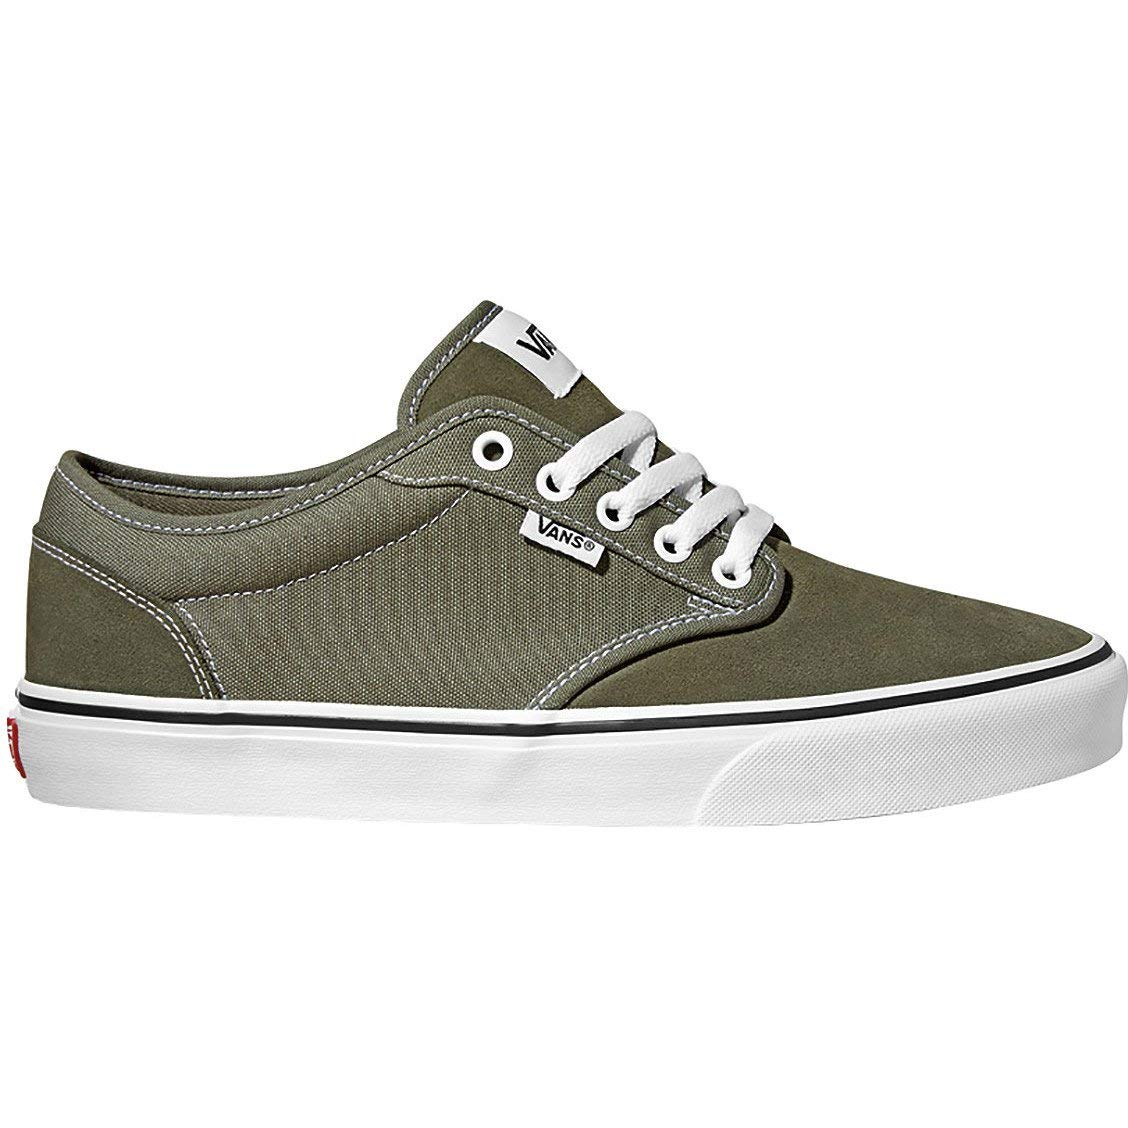 f4750ab89132d6 Galleon - Vans Atwood Shoes 11.5 B(M) US Women   10 D(M) US Suede Canvas  Green